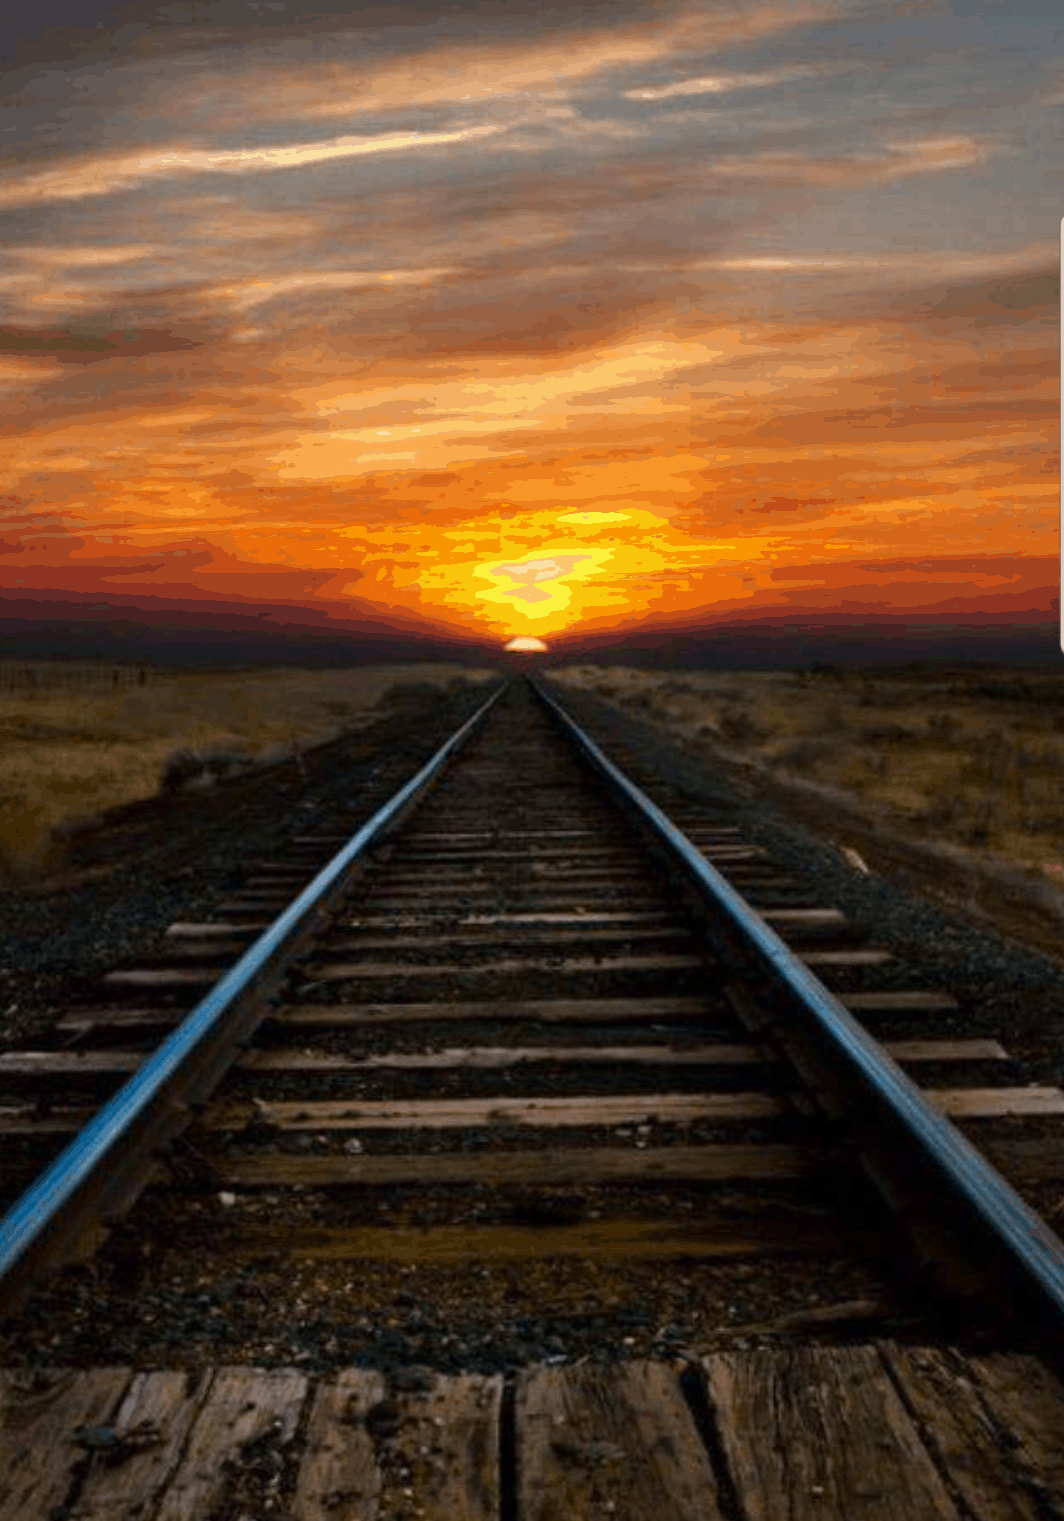 Jordan Rail Specialists in new track construction